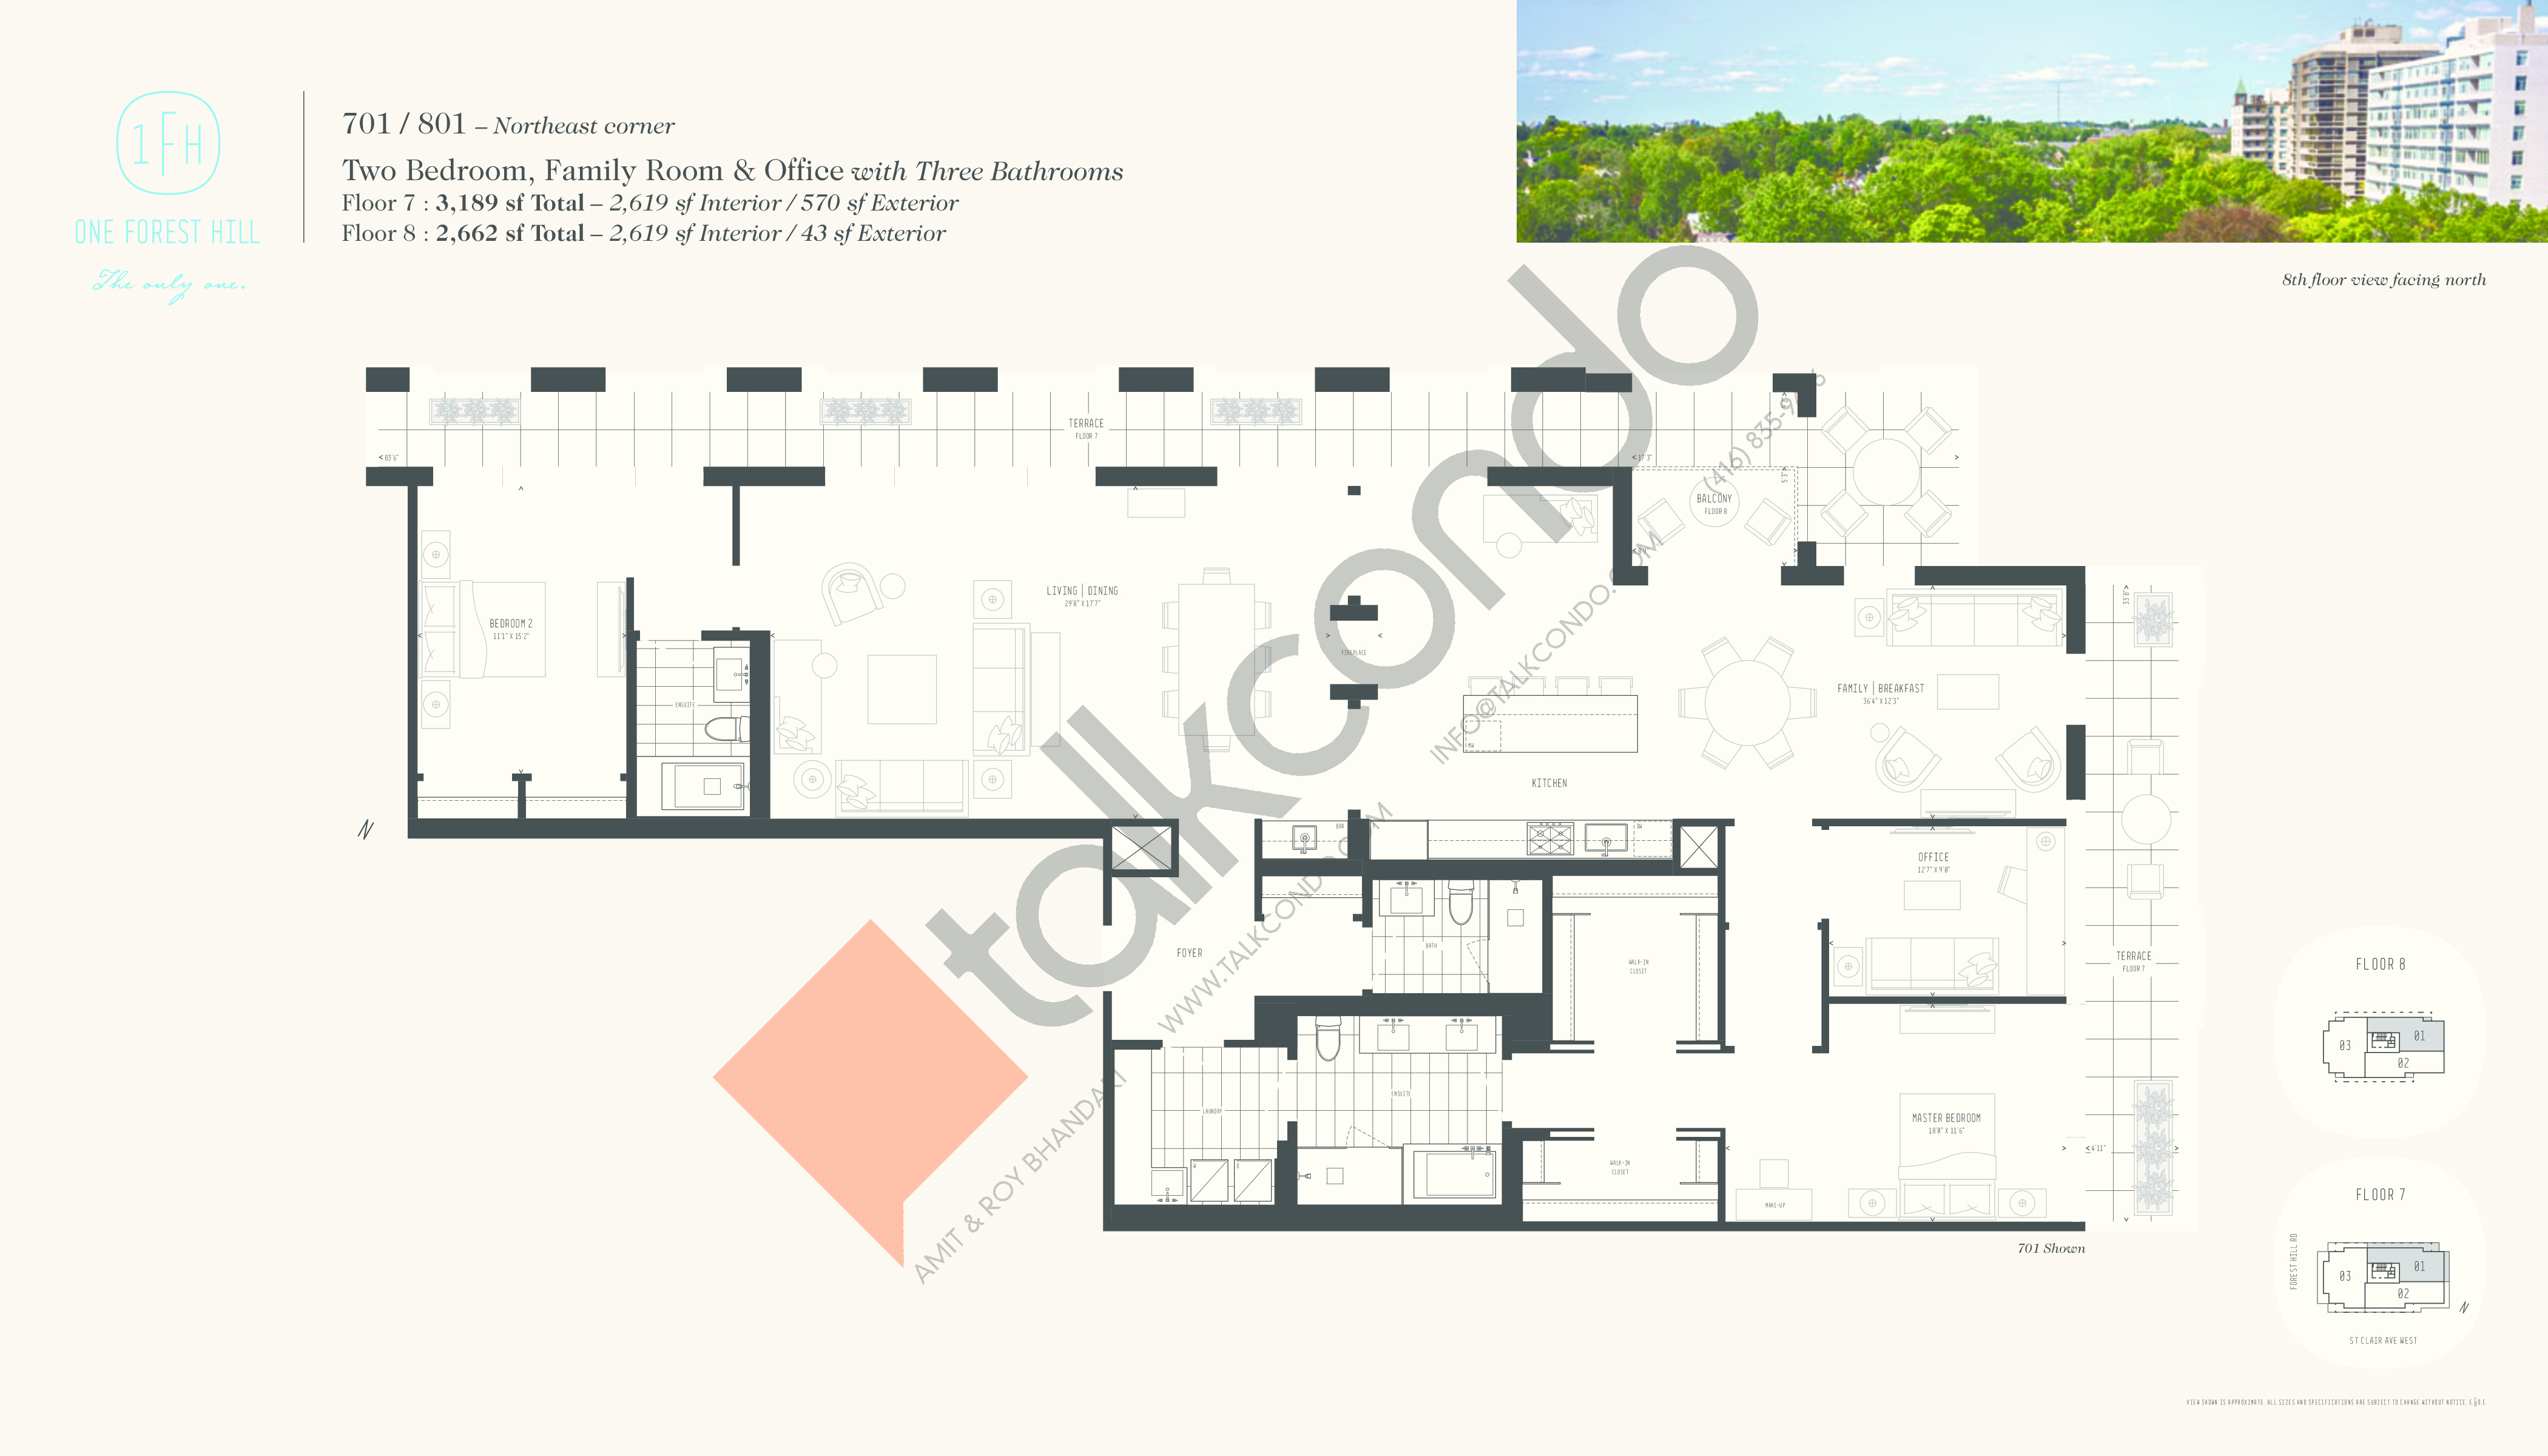 701 / 801 Floor Plan at One Forest Hill Condos - 2619 sq.ft